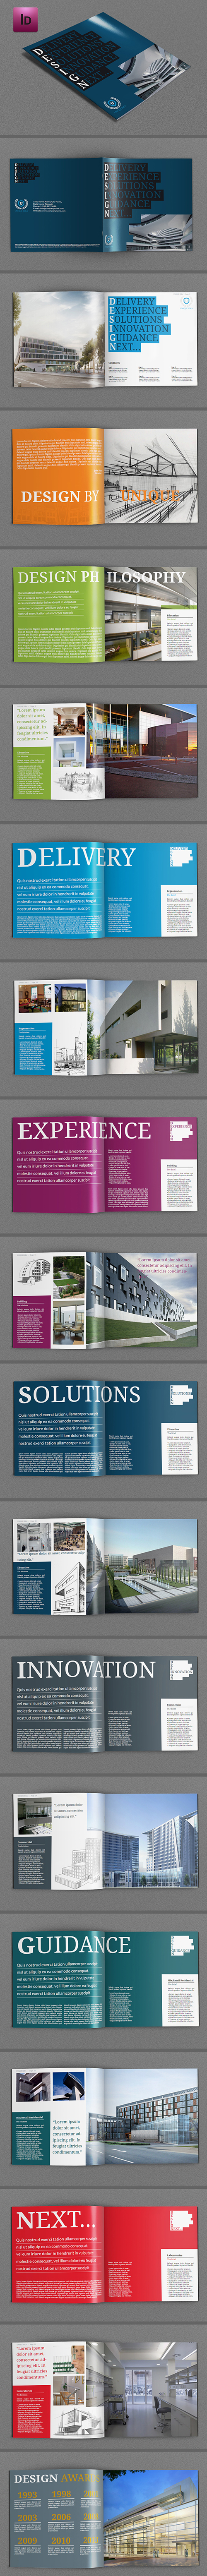 Design Company Brochure Template